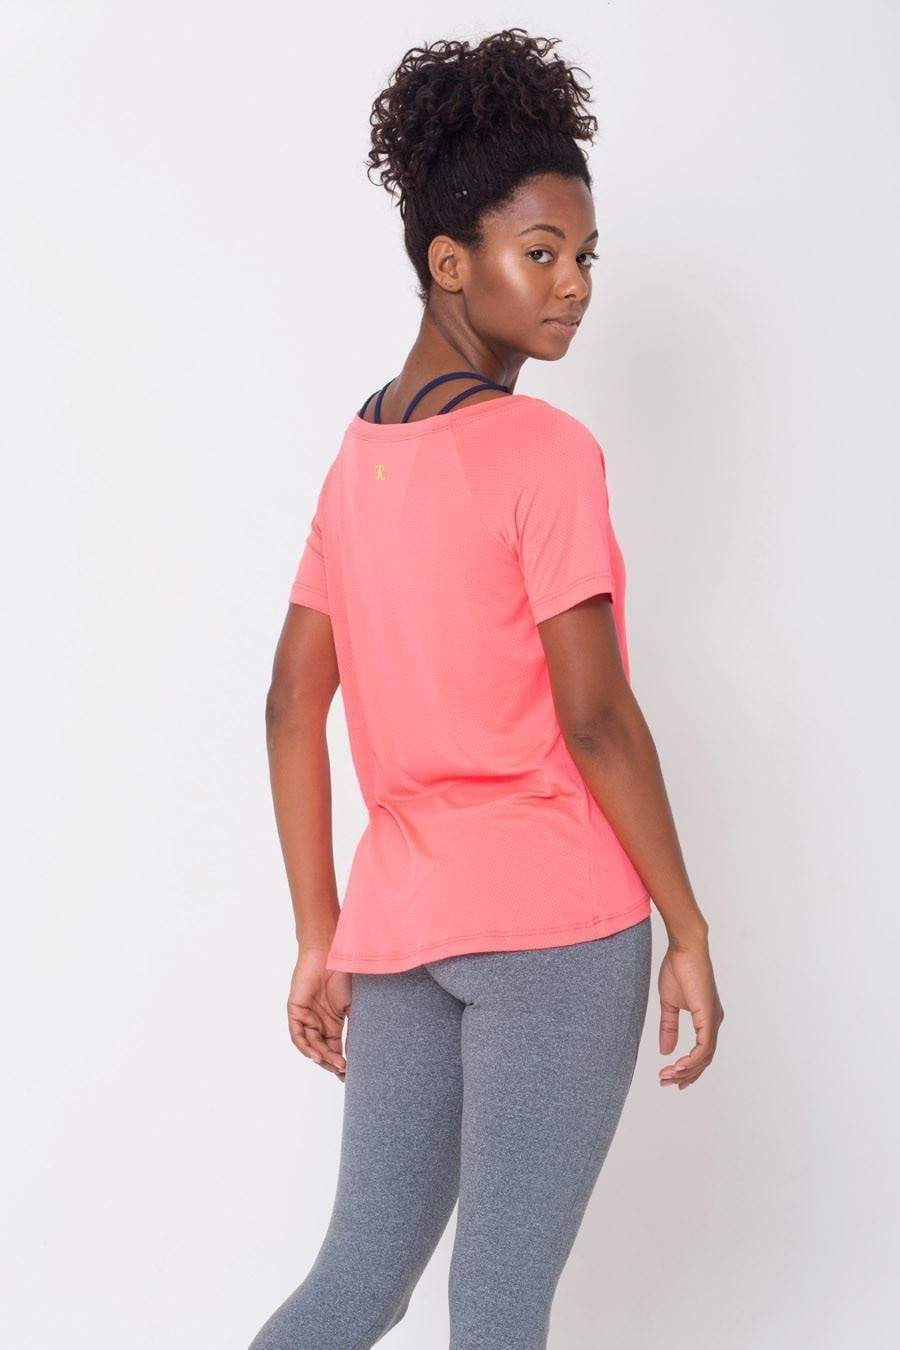 Peach Raglan V-neck Tee - Sam's Fitness Goods